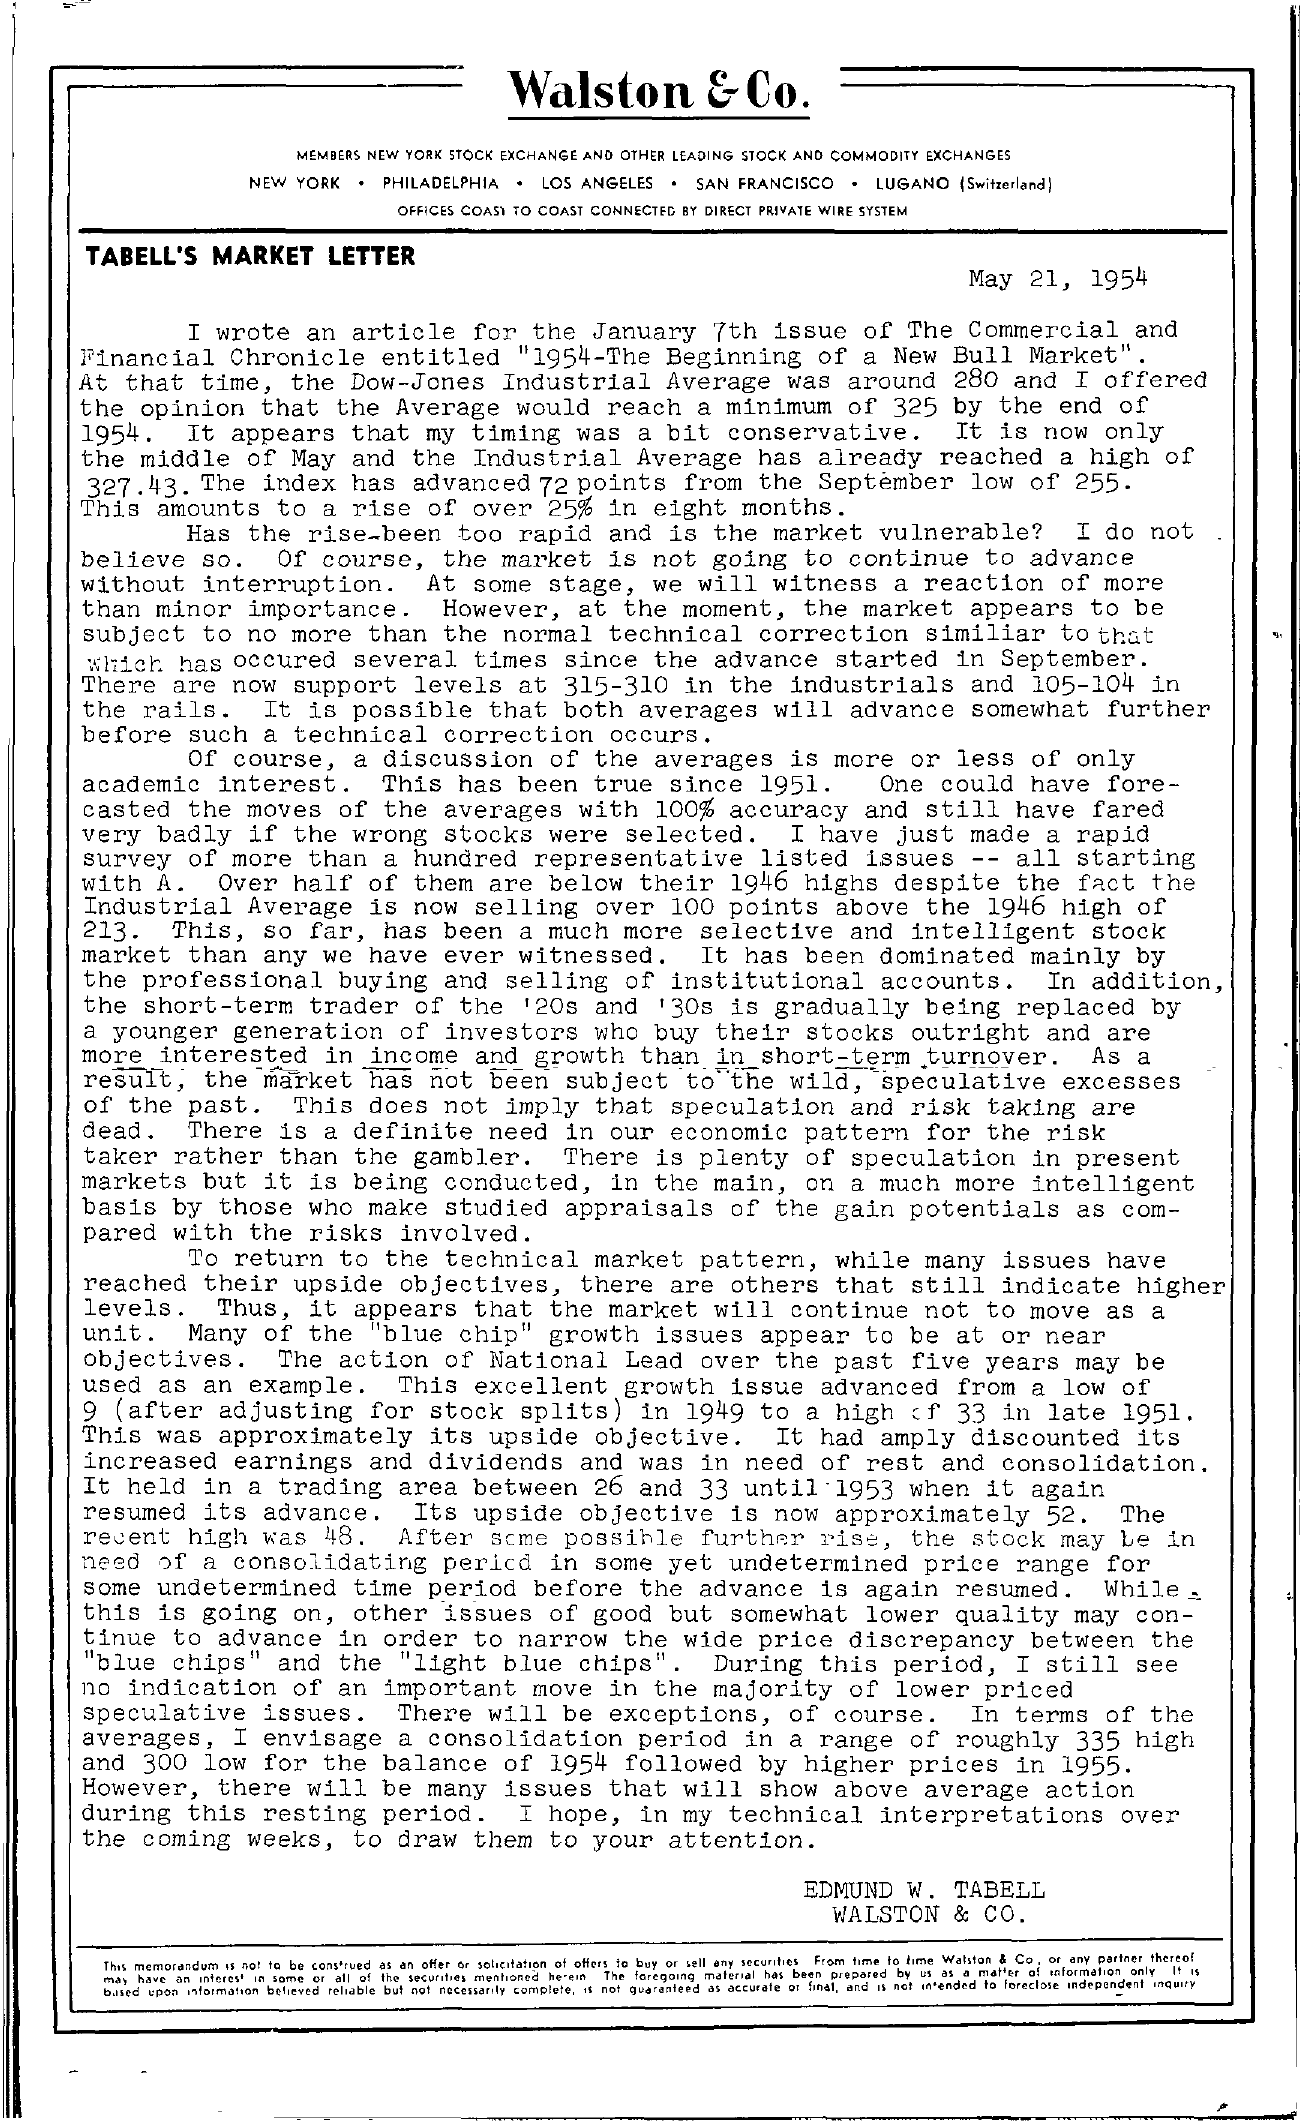 Tabell's Market Letter - May 21, 1954